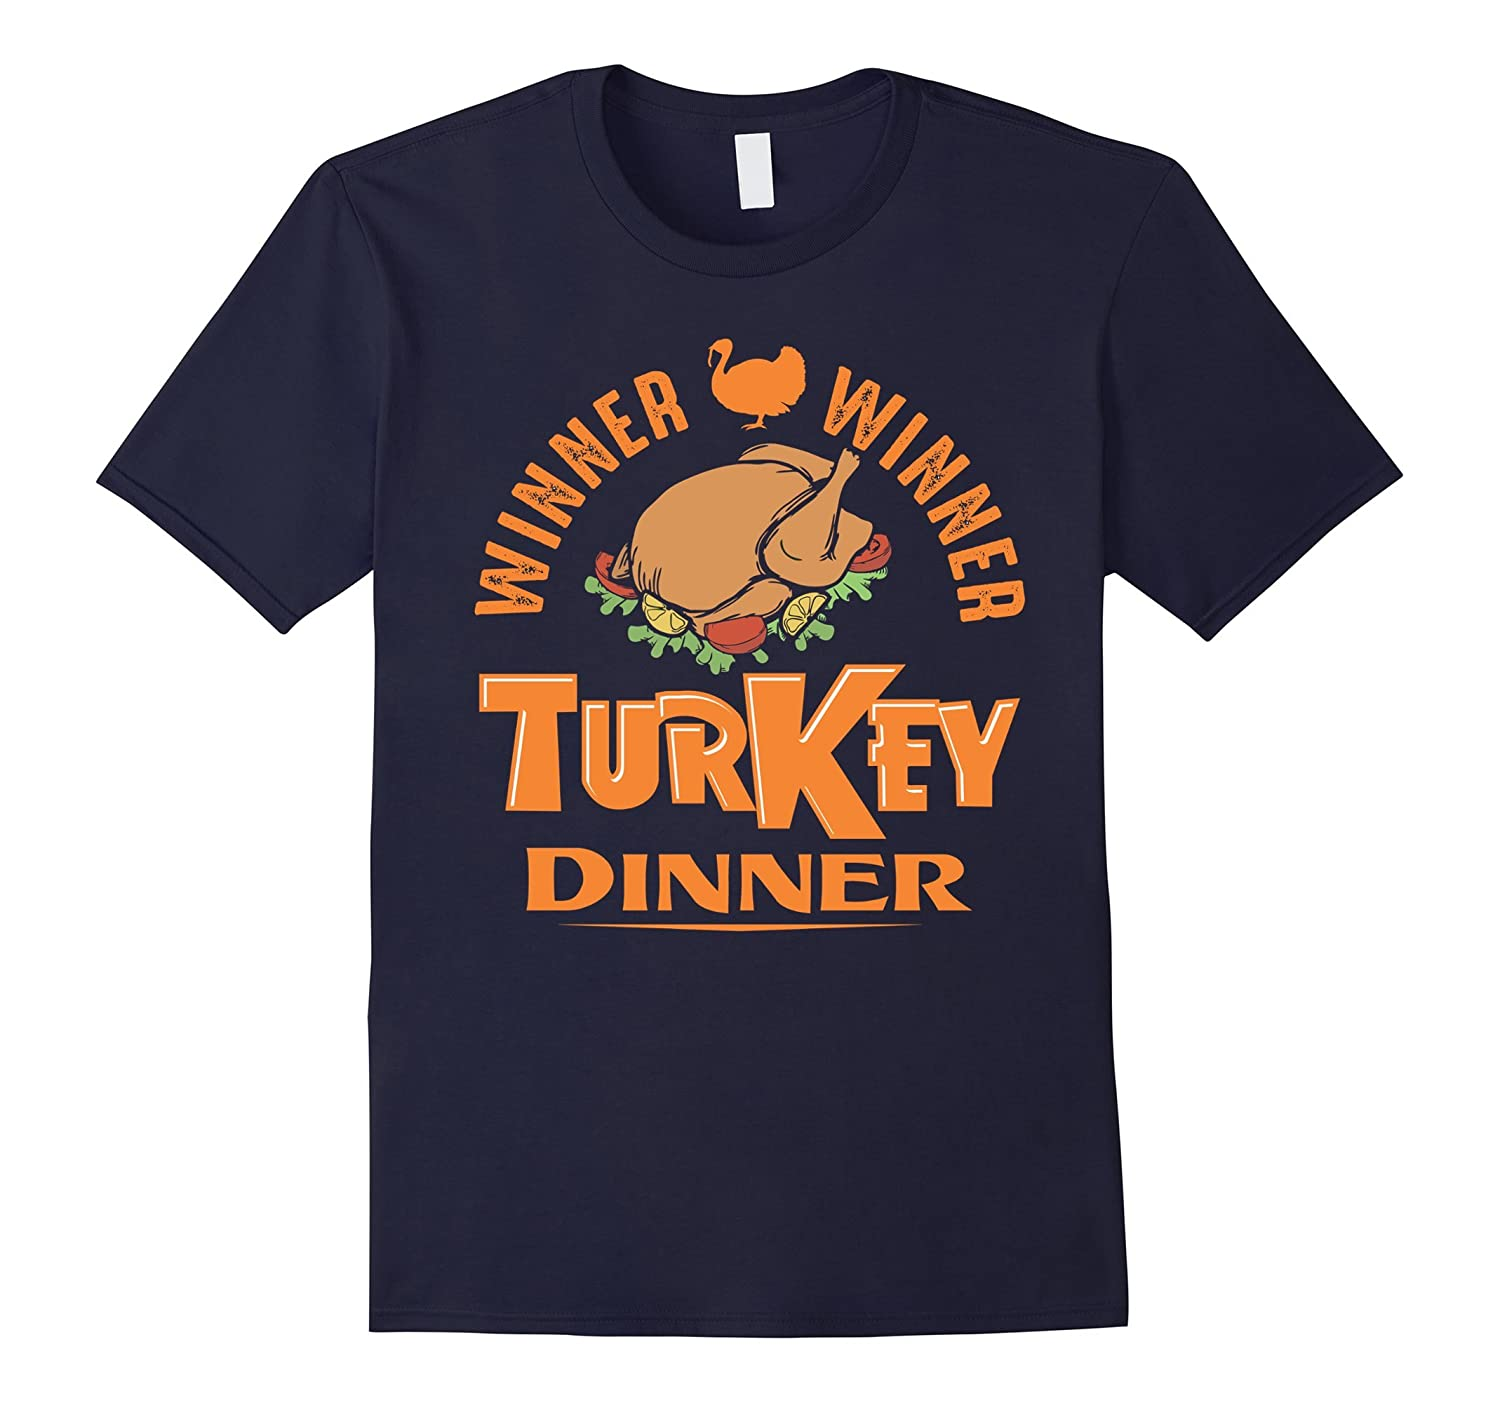 Funny Thanksgiving Day Shirt Winner Winner Turkey Dinner-T-Shirt